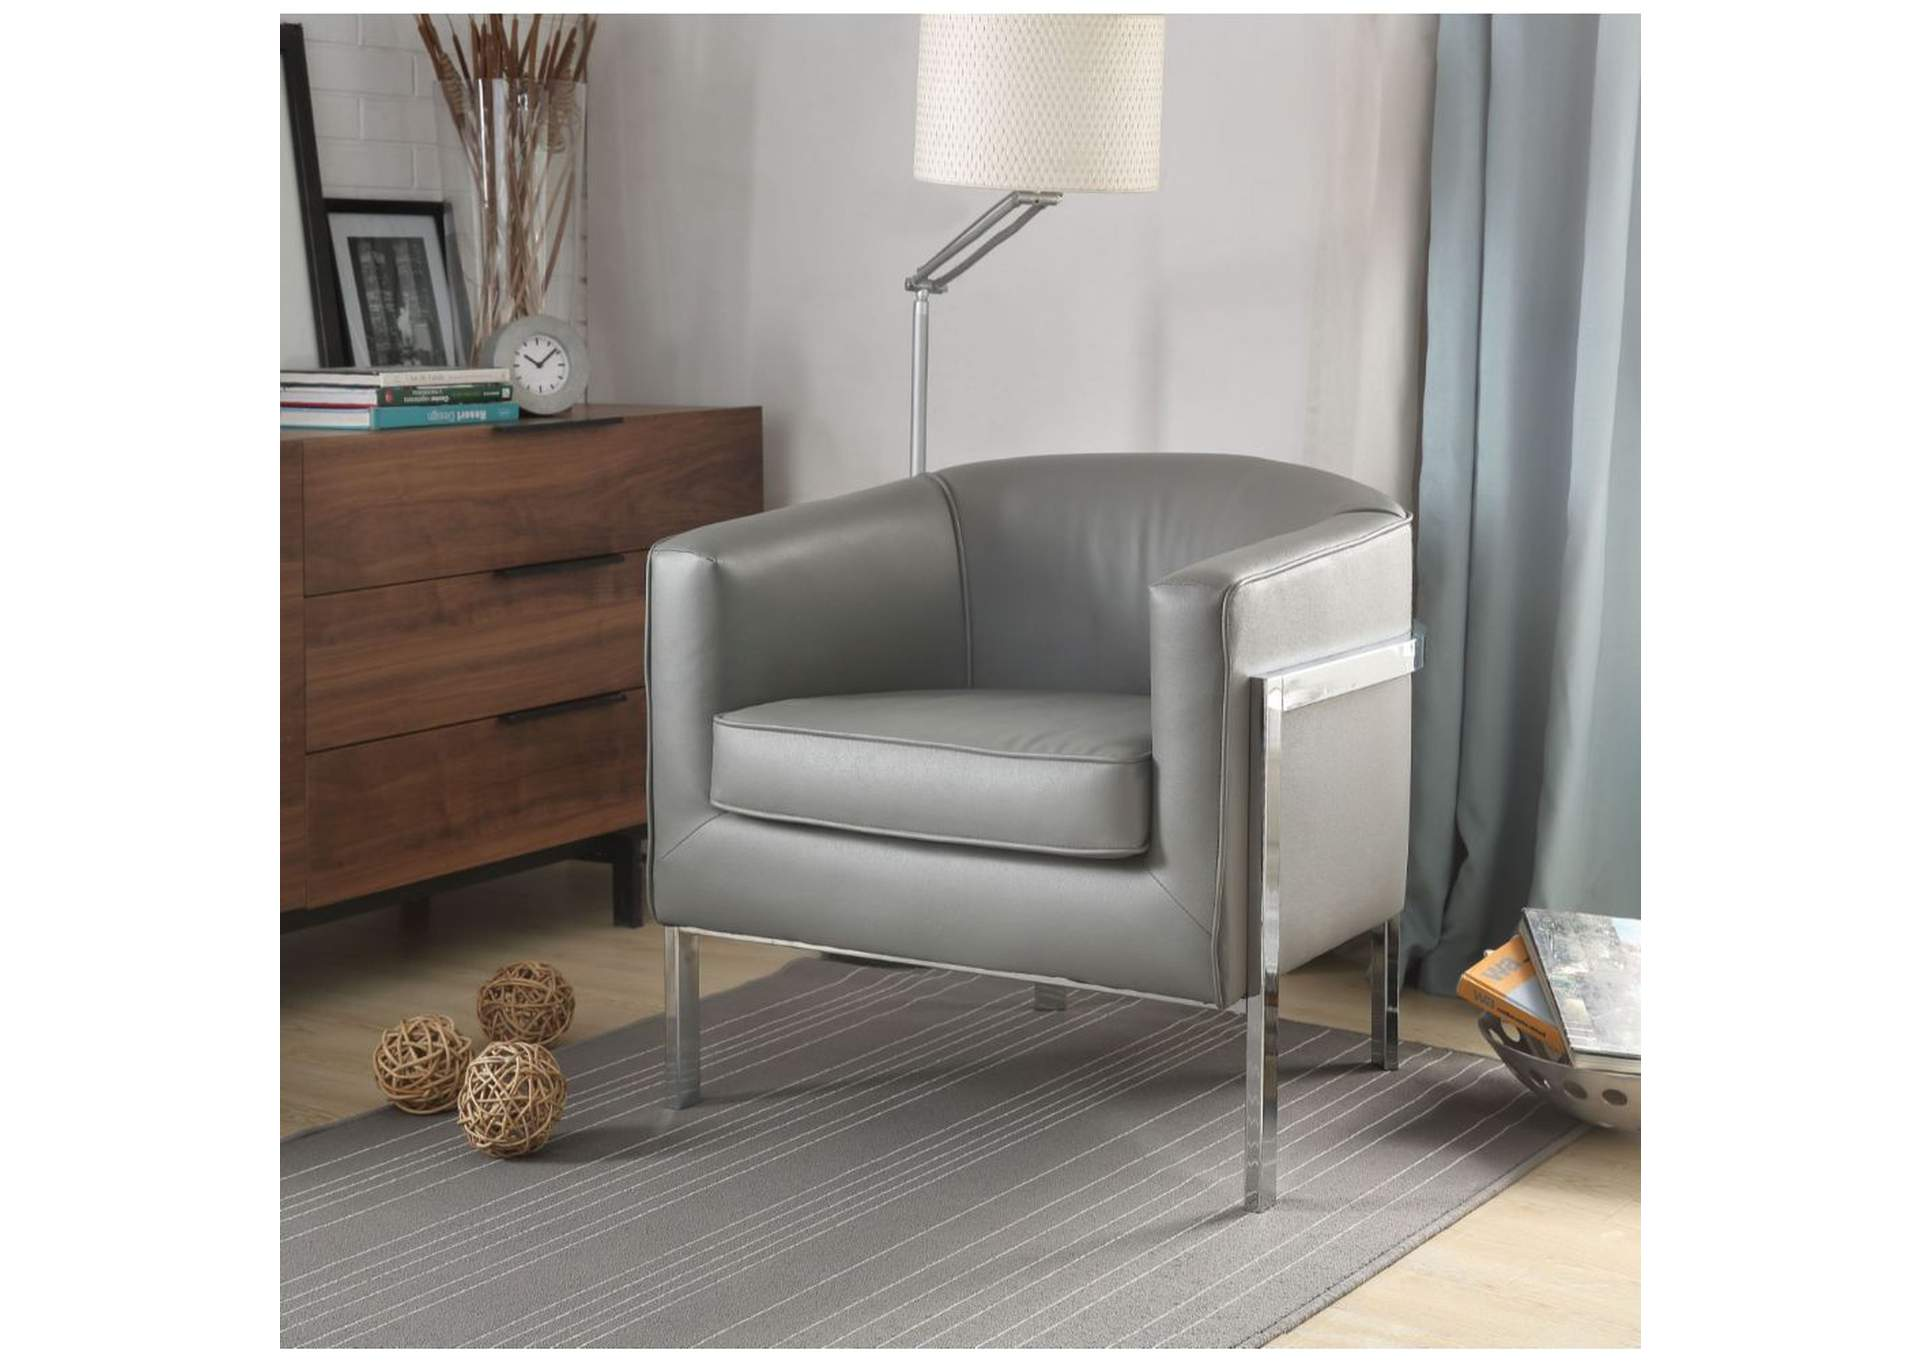 Tiarnan Vintage Gray PU & Chrome Accent Chair,Acme